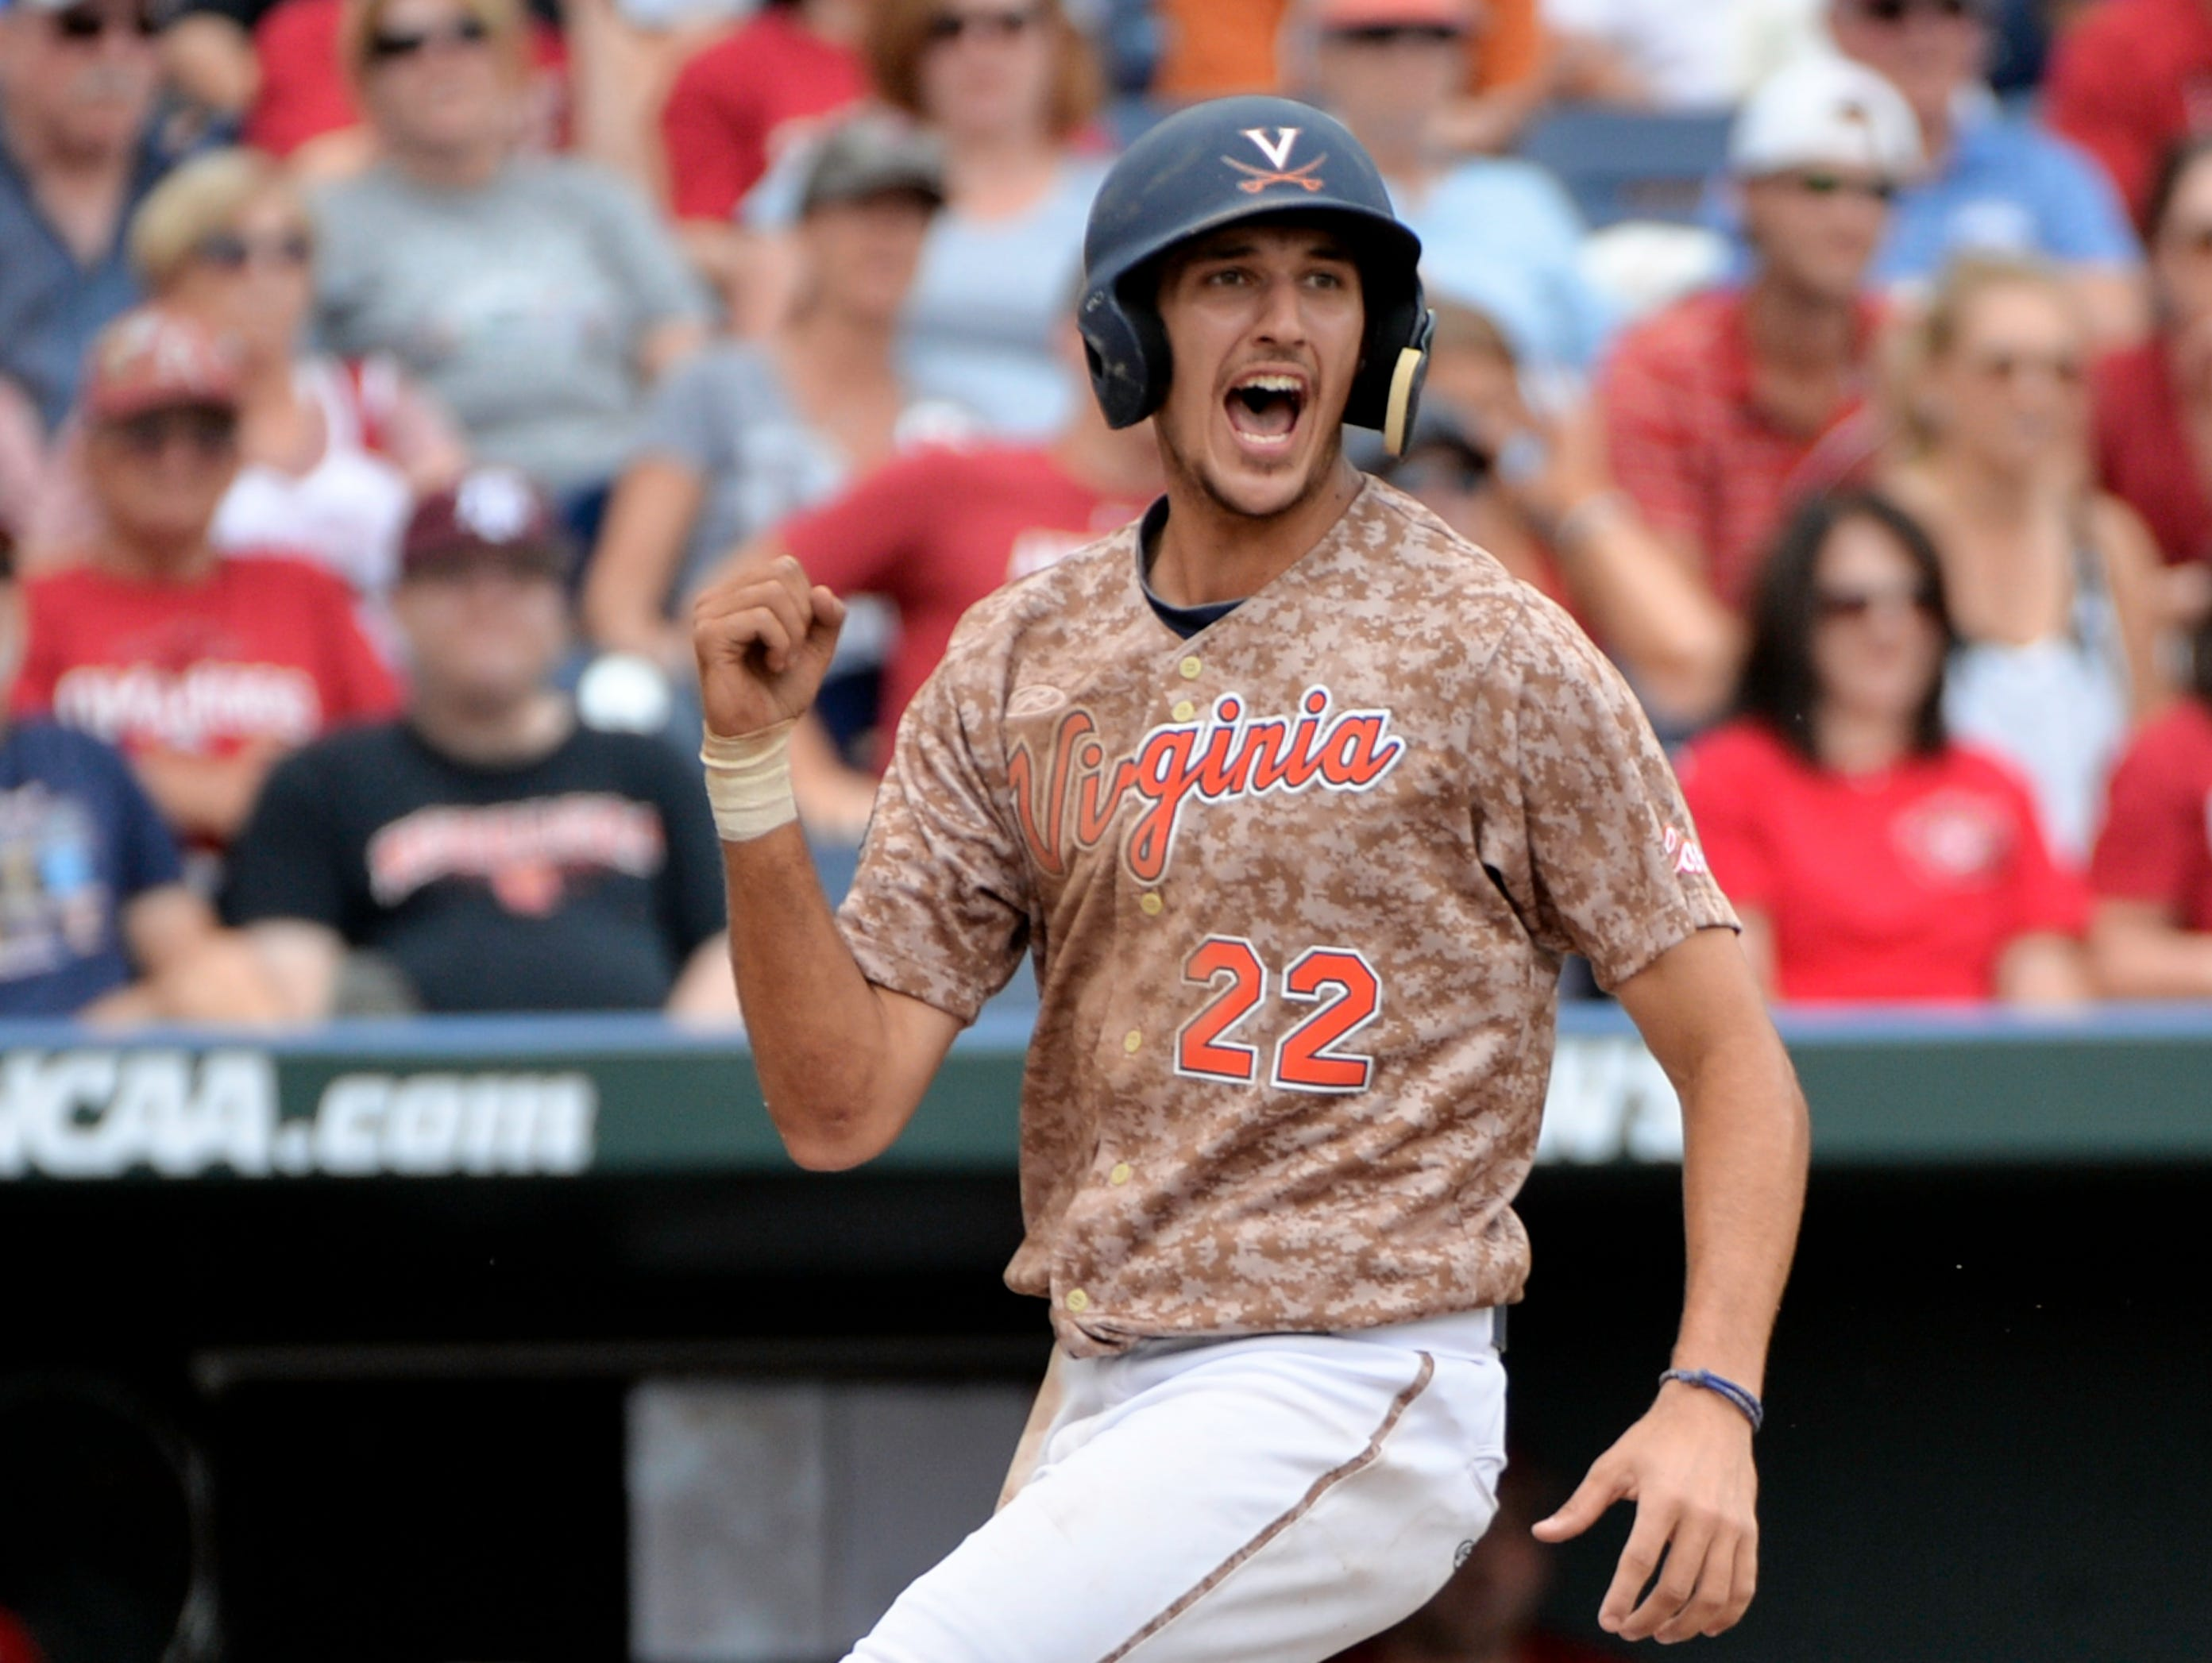 Virginia's Daniel Pinero celebrates after scoring on a RBI double by Kenny Towns in the eighth inning against Arkansas during the opening game of the College World Series at TD Ameritrade Park in Omaha, Neb. Virginia won 5-3.